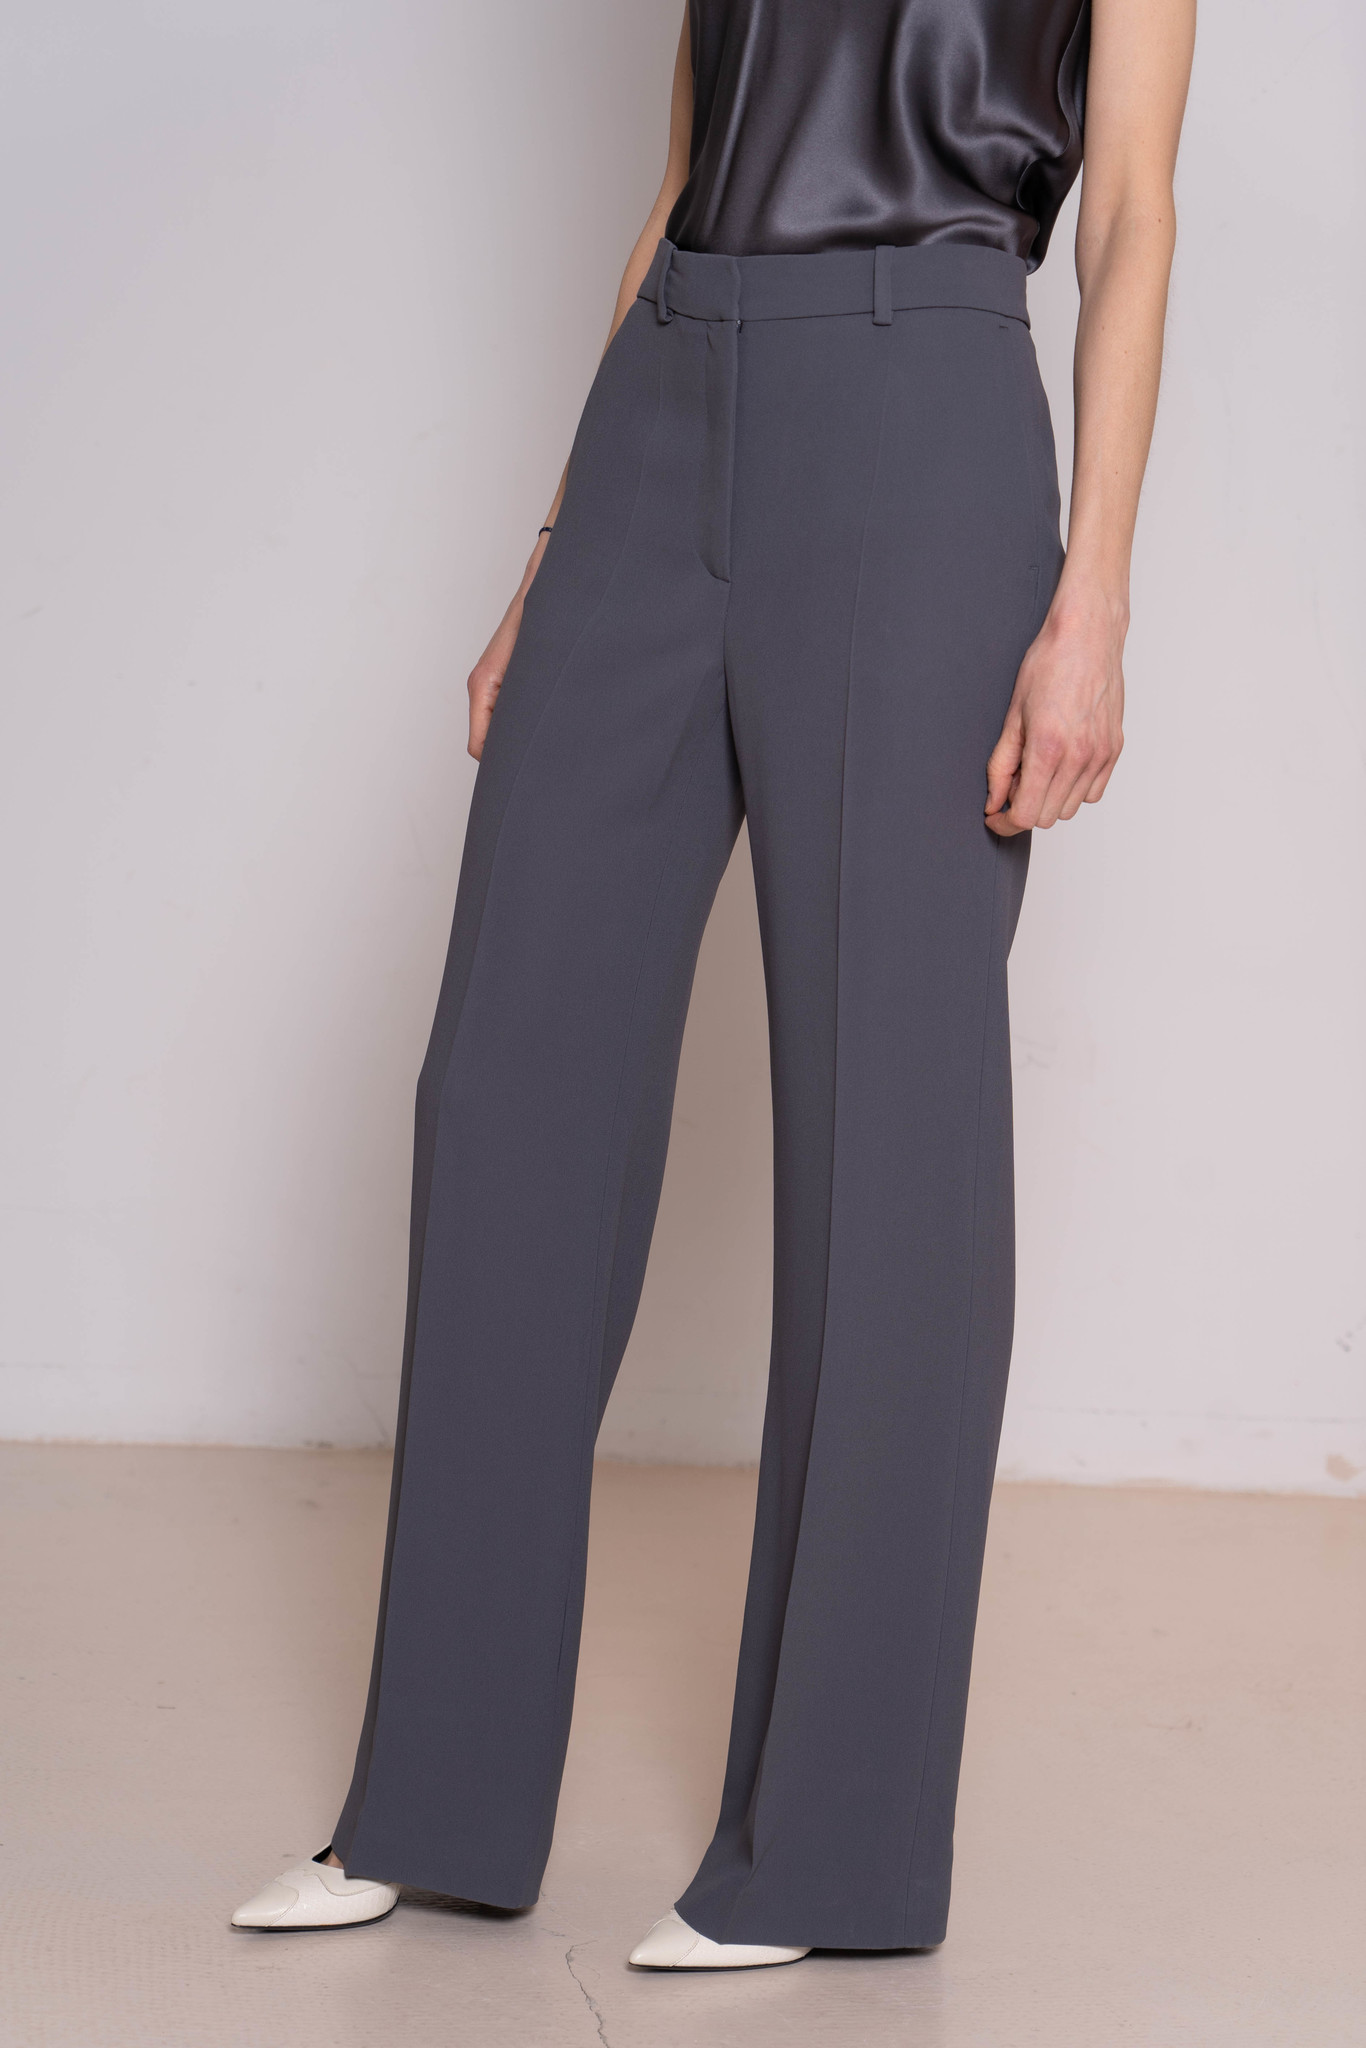 Morissey New Cady trousers capers